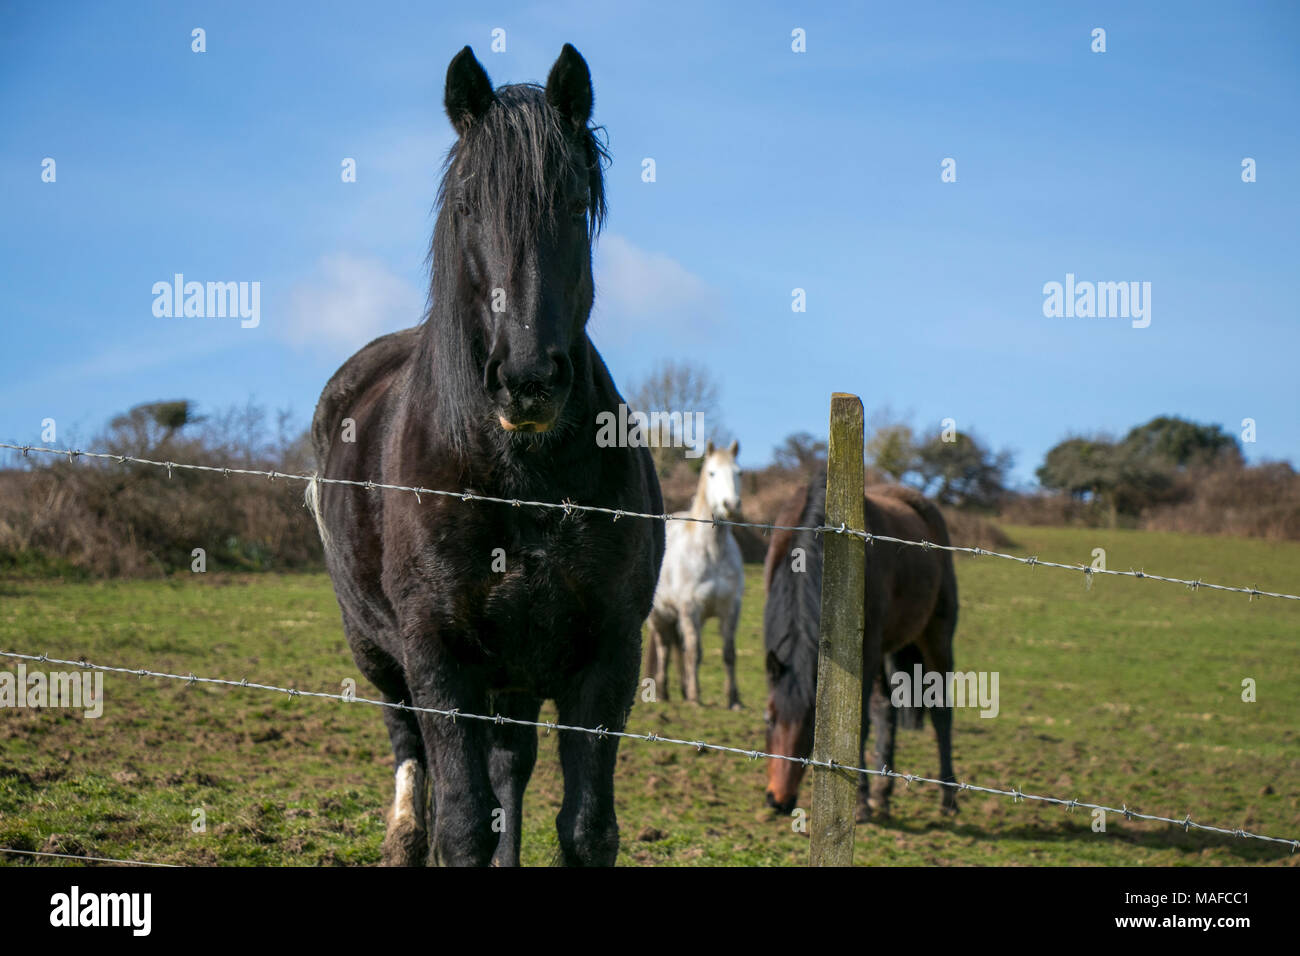 Black stallion behind barbed wire in a field with horses in the background and blue sky - Stock Image